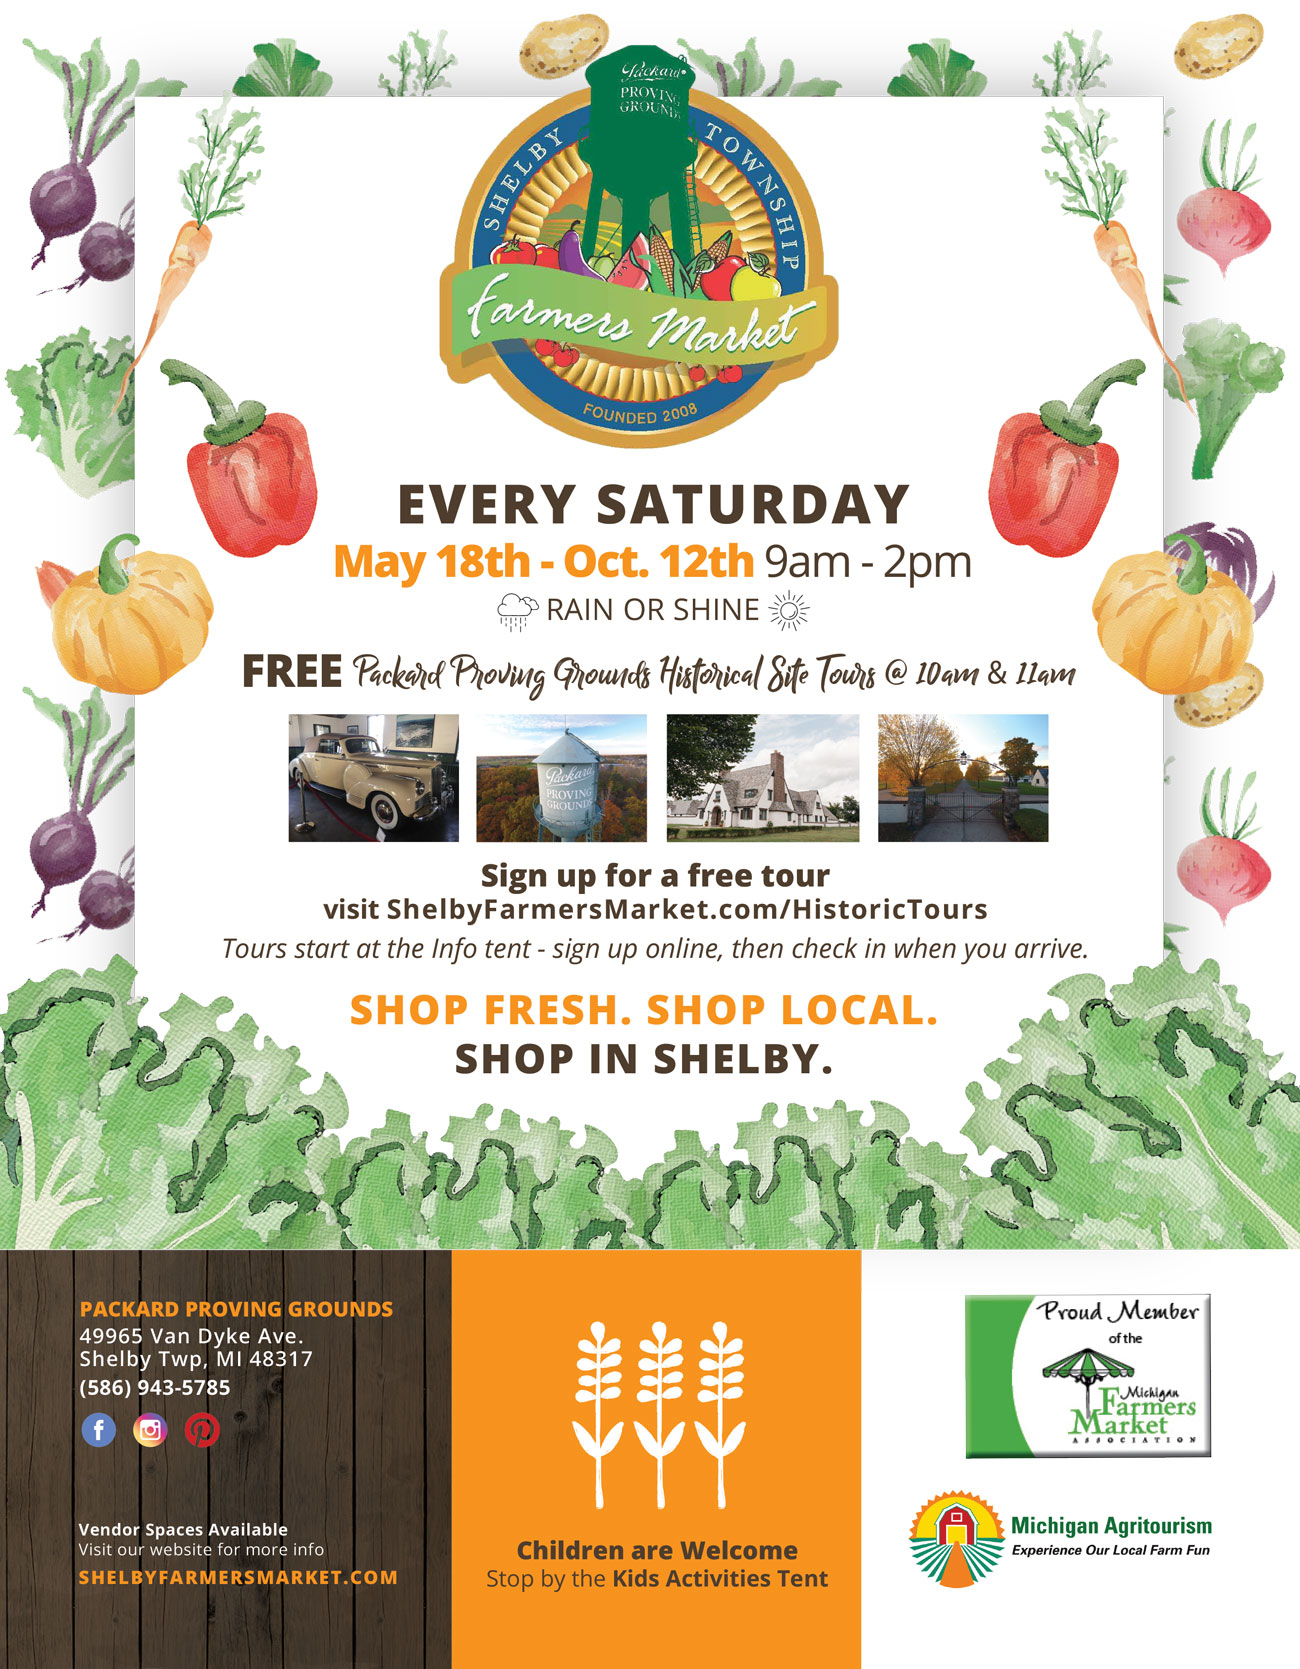 Shelby Farmers Market 2019 Season Flyer, Every Saturday May 18th - October 12th; 9am - 2pm; Rain or Shine. FREE Packard Proving Grounds Historical Site Tours at 10am and 11am. Sign up for a free tour - visit ShelbyFarmersMarket.com/HistoricTours. Tours start at the info tent - sign up online, then check in when you arrive. Shop Fresh. Shop Local. Shop in Shelby. Children are welcome. Stop by the Kids Activities Tent. Vendor Spaces Available. Visit our website for more info.